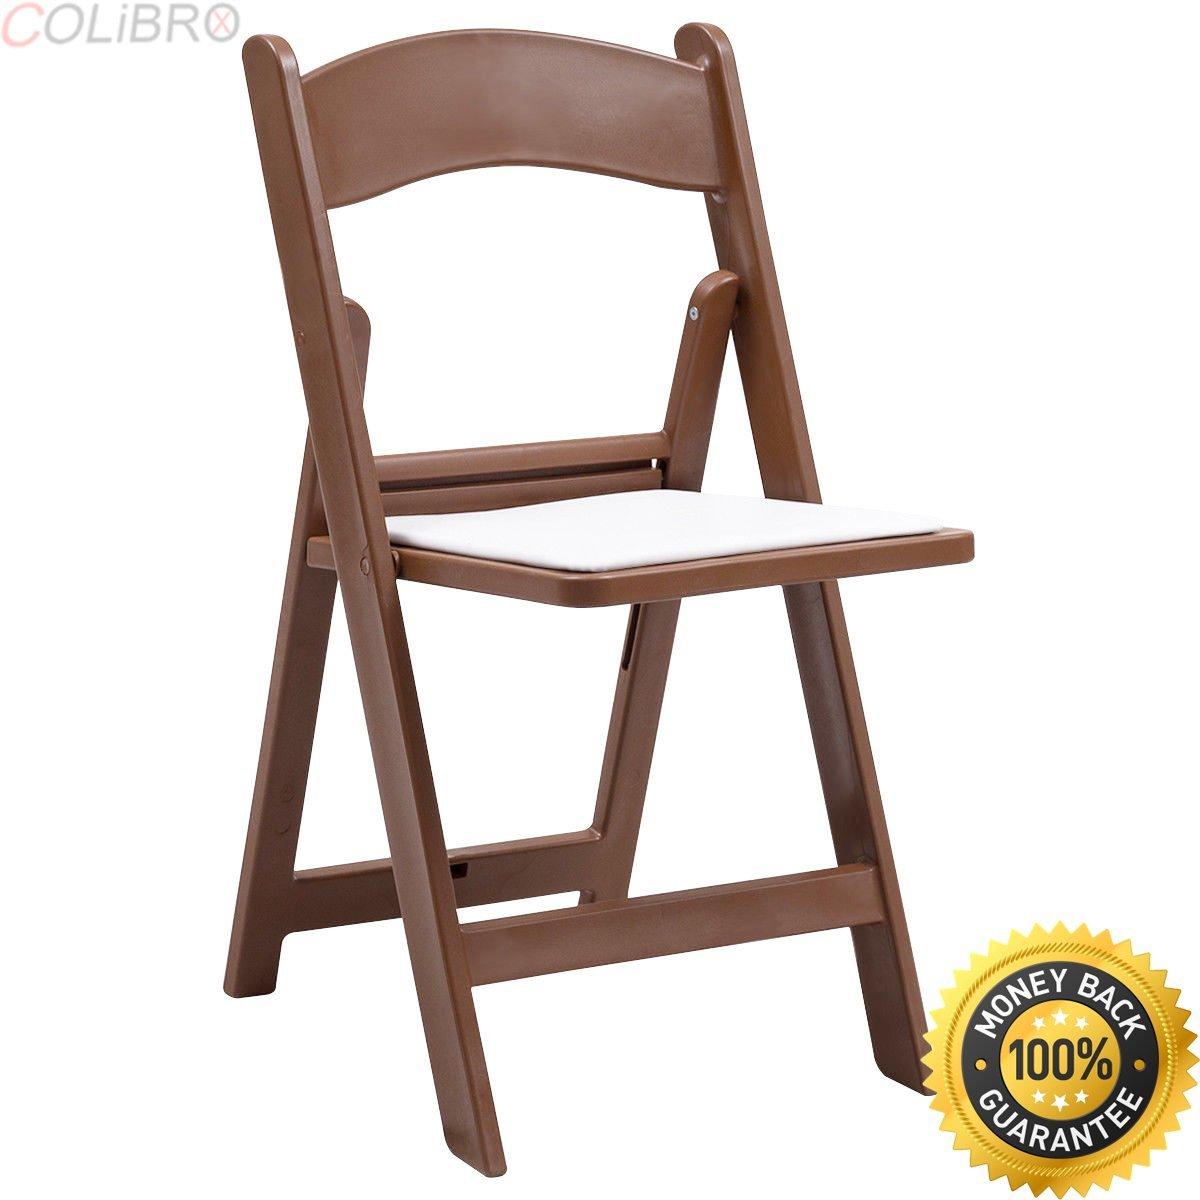 31793f169c90 Get Quotations · COLIBROX--Set of 4 Plastic Folding Chairs PU Leather Seat  Stackable Wedding Party Brown